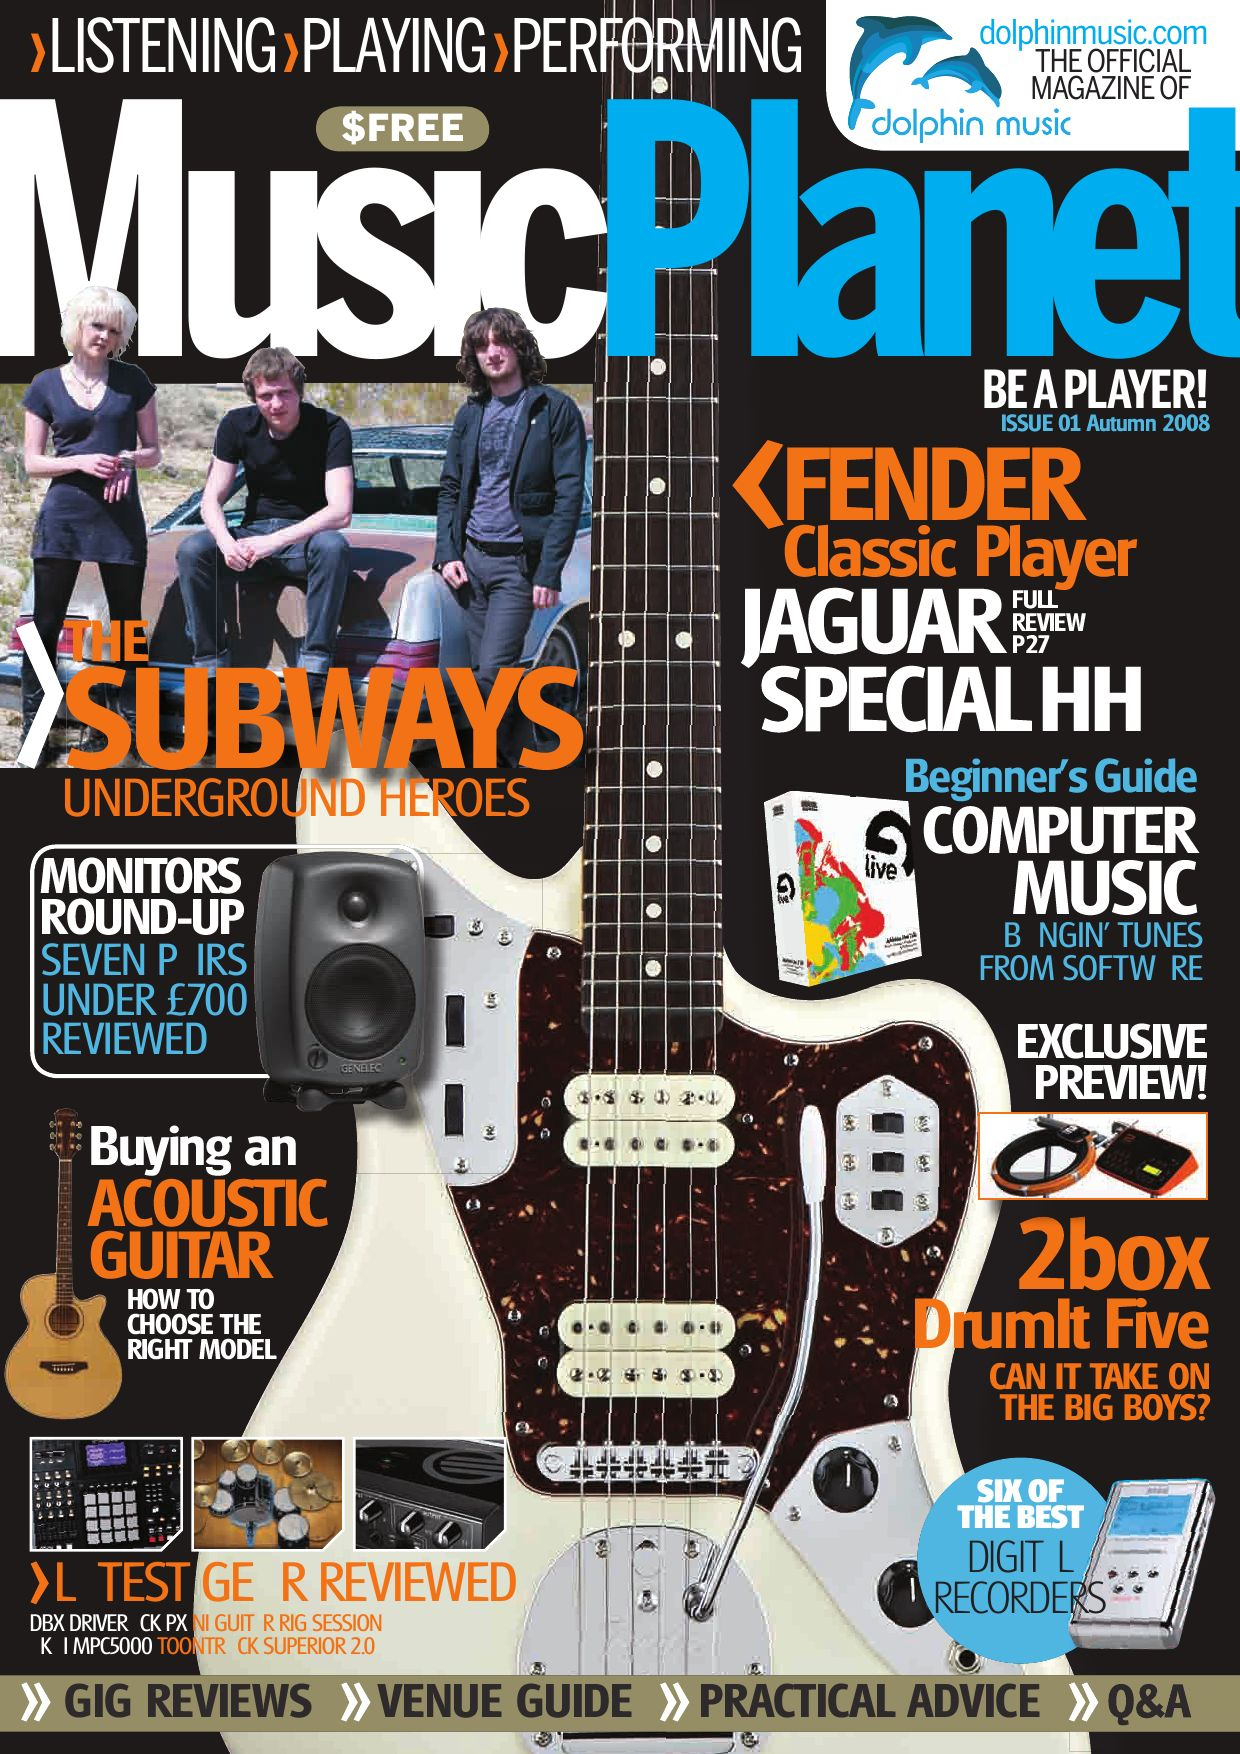 Music Planet - Issue 1 by Dolphin Music - issuu on